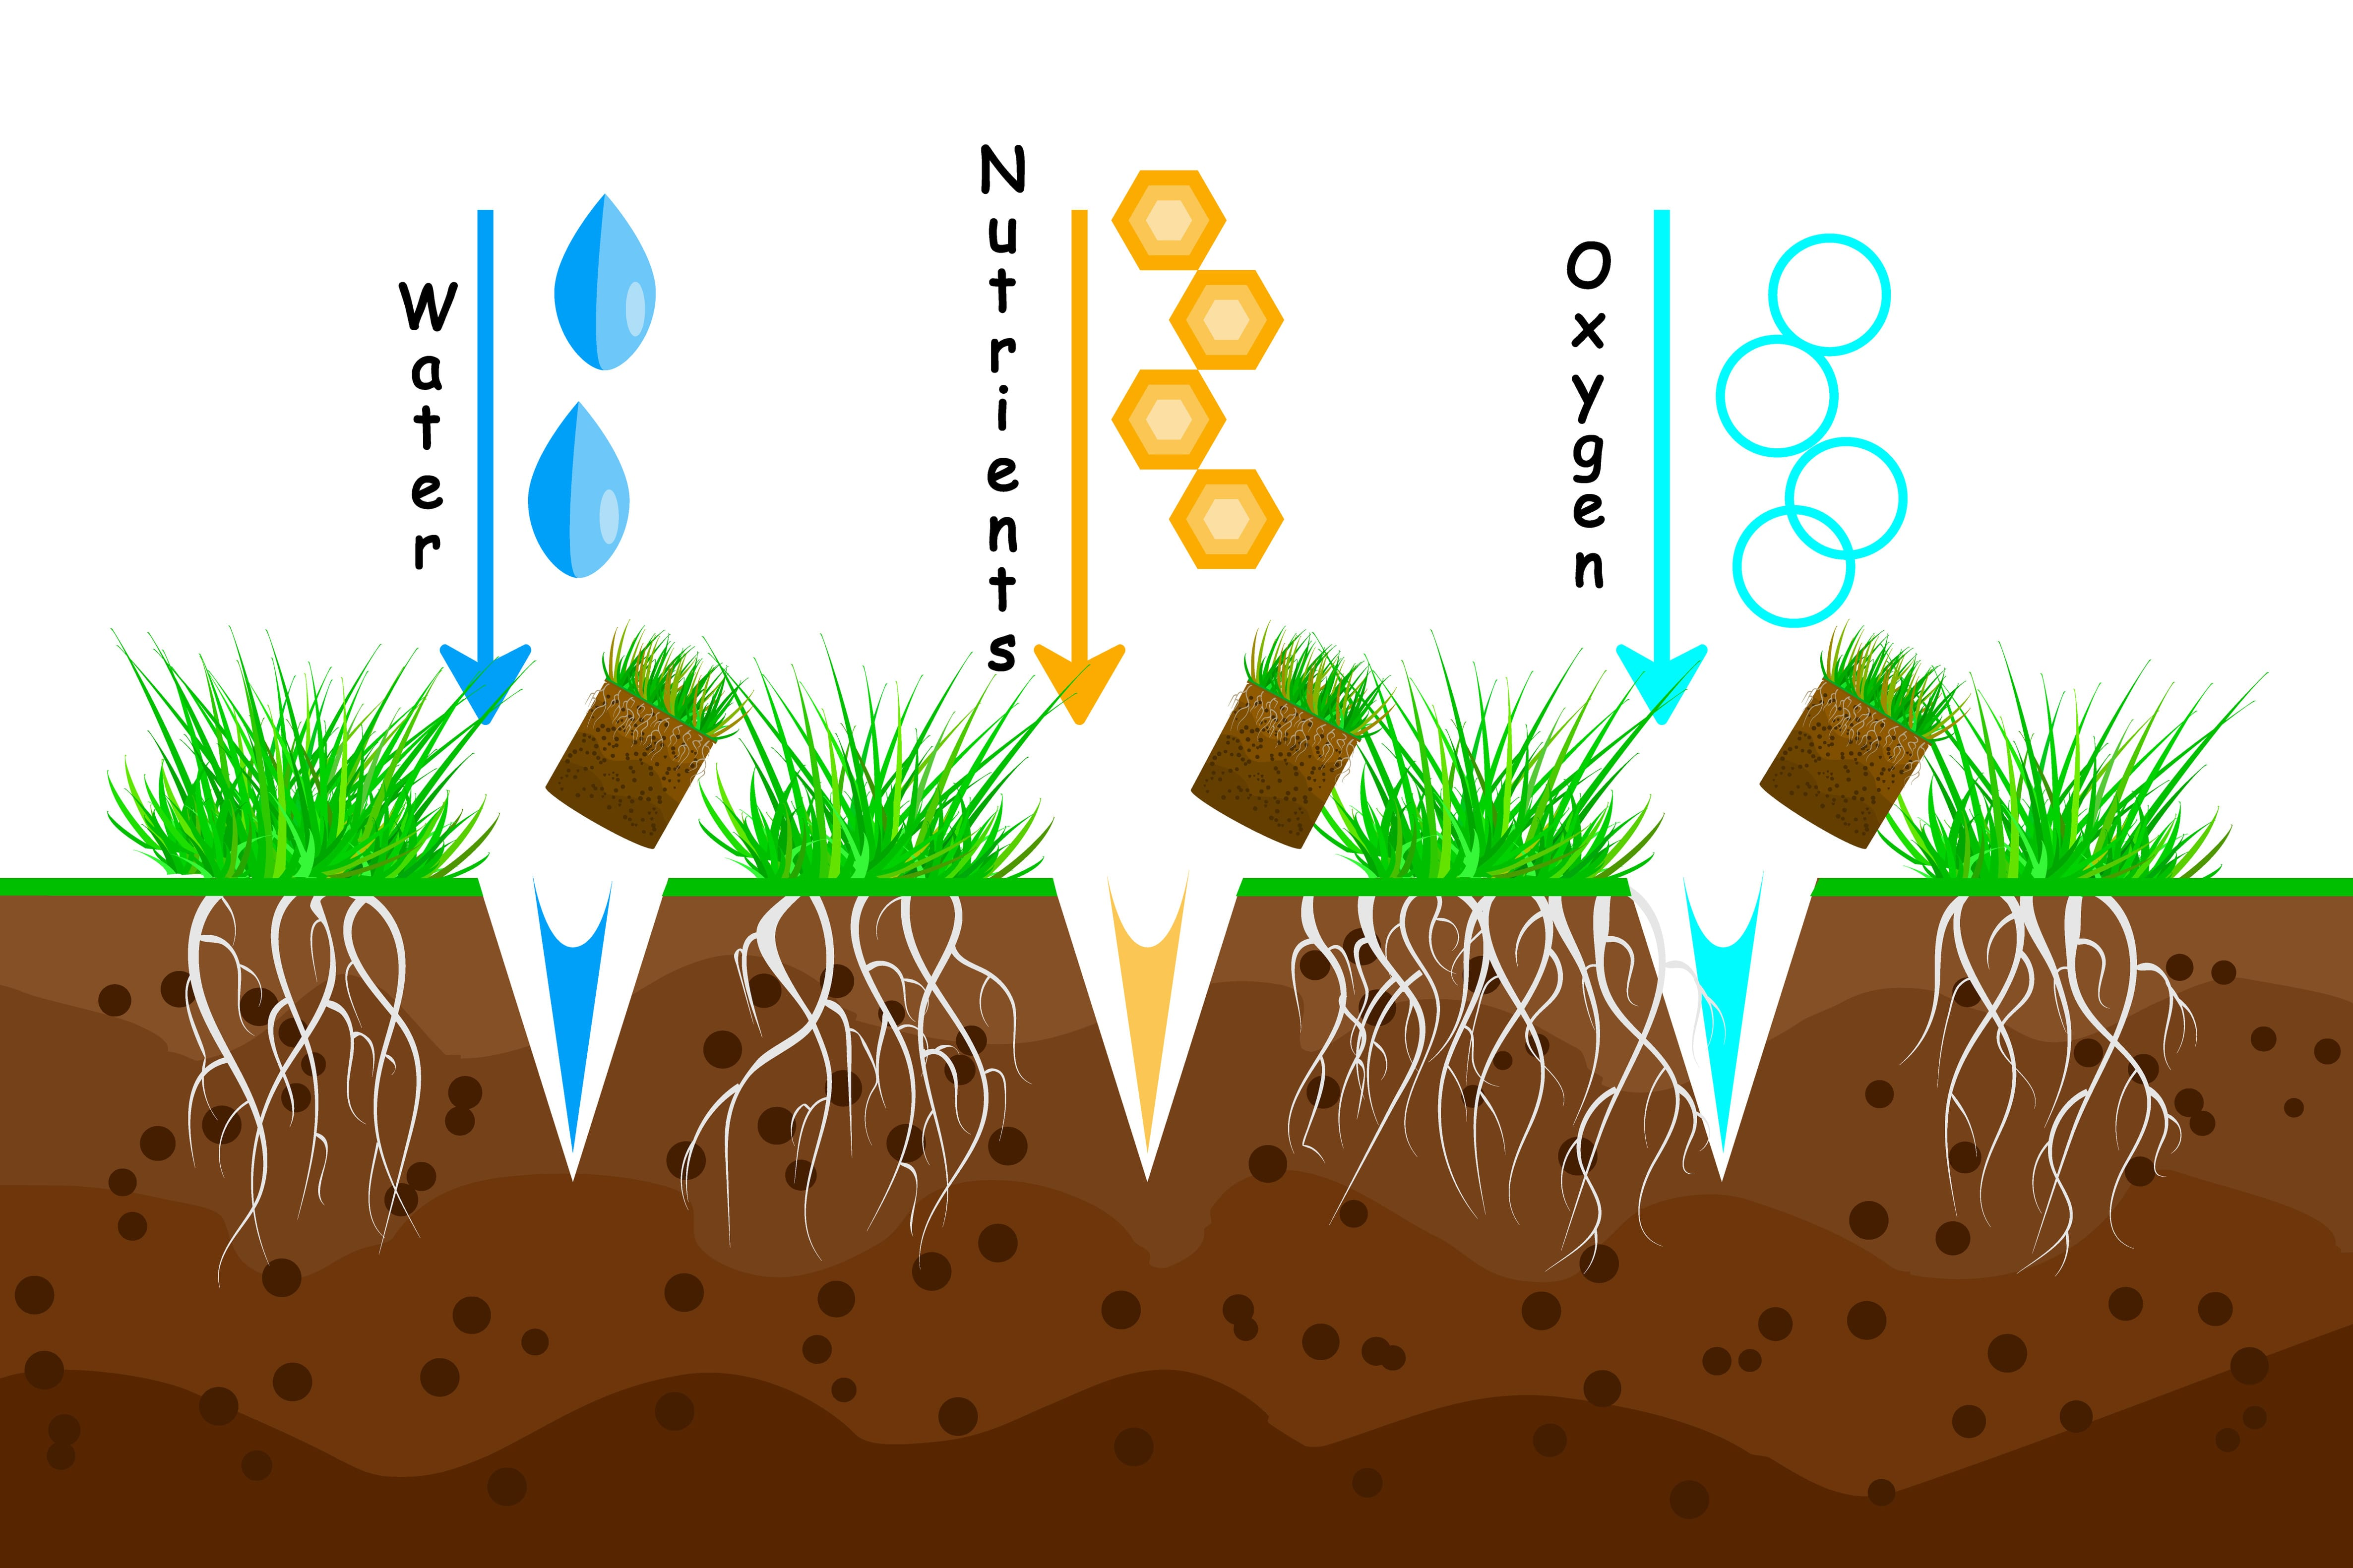 Lawn aeration. Lawn grass care service, gardening and landscape design. Waste of aeration technique used in the upkeep of lawns and turf. Lawn maintenance. Illustration for article, infographics or instruction. Stock vector